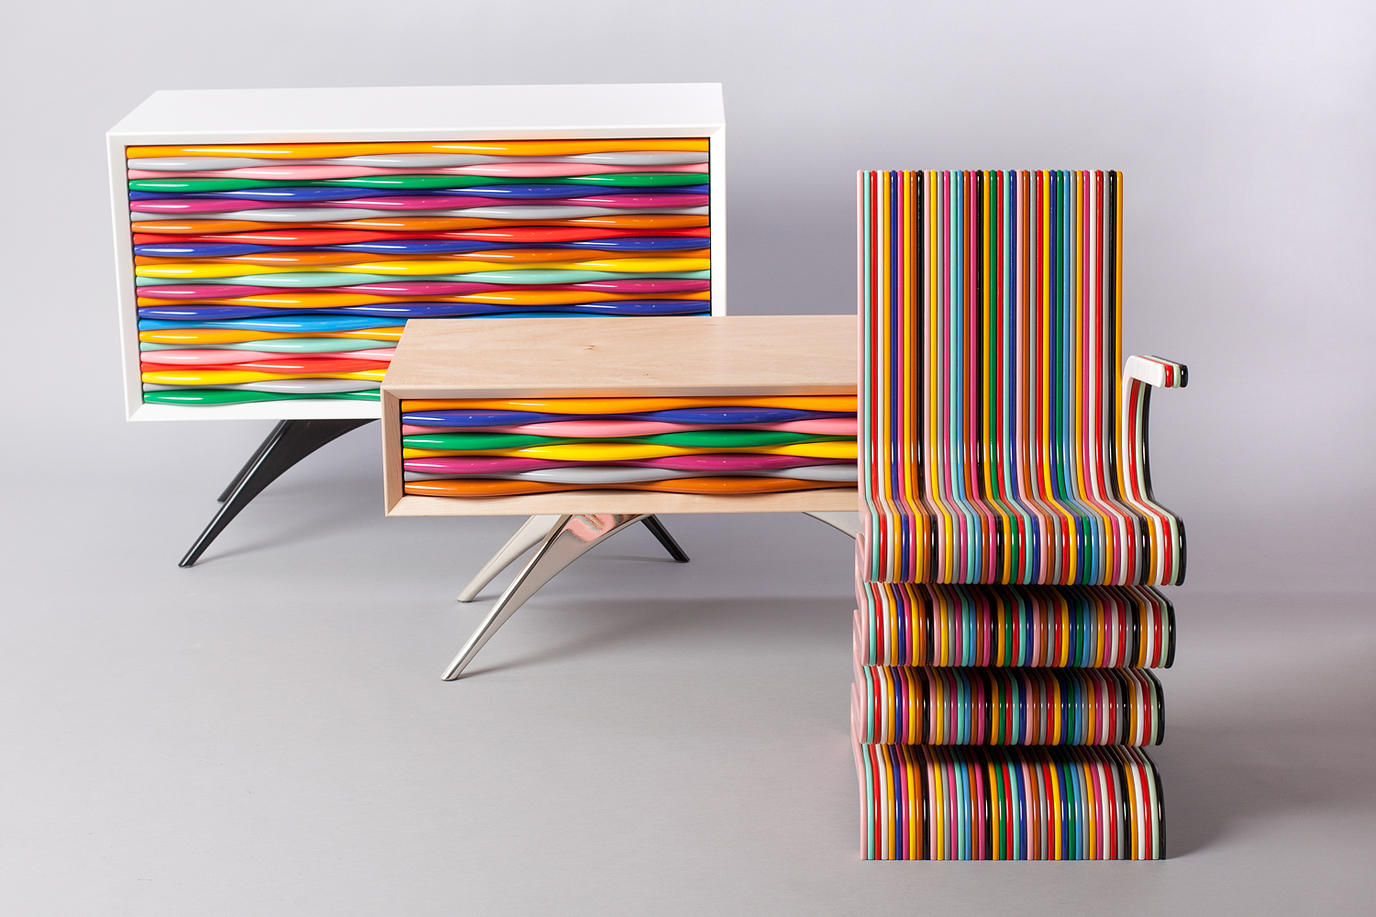 Design pop mobili multicolor di anthony hartley for Design di mobili korson